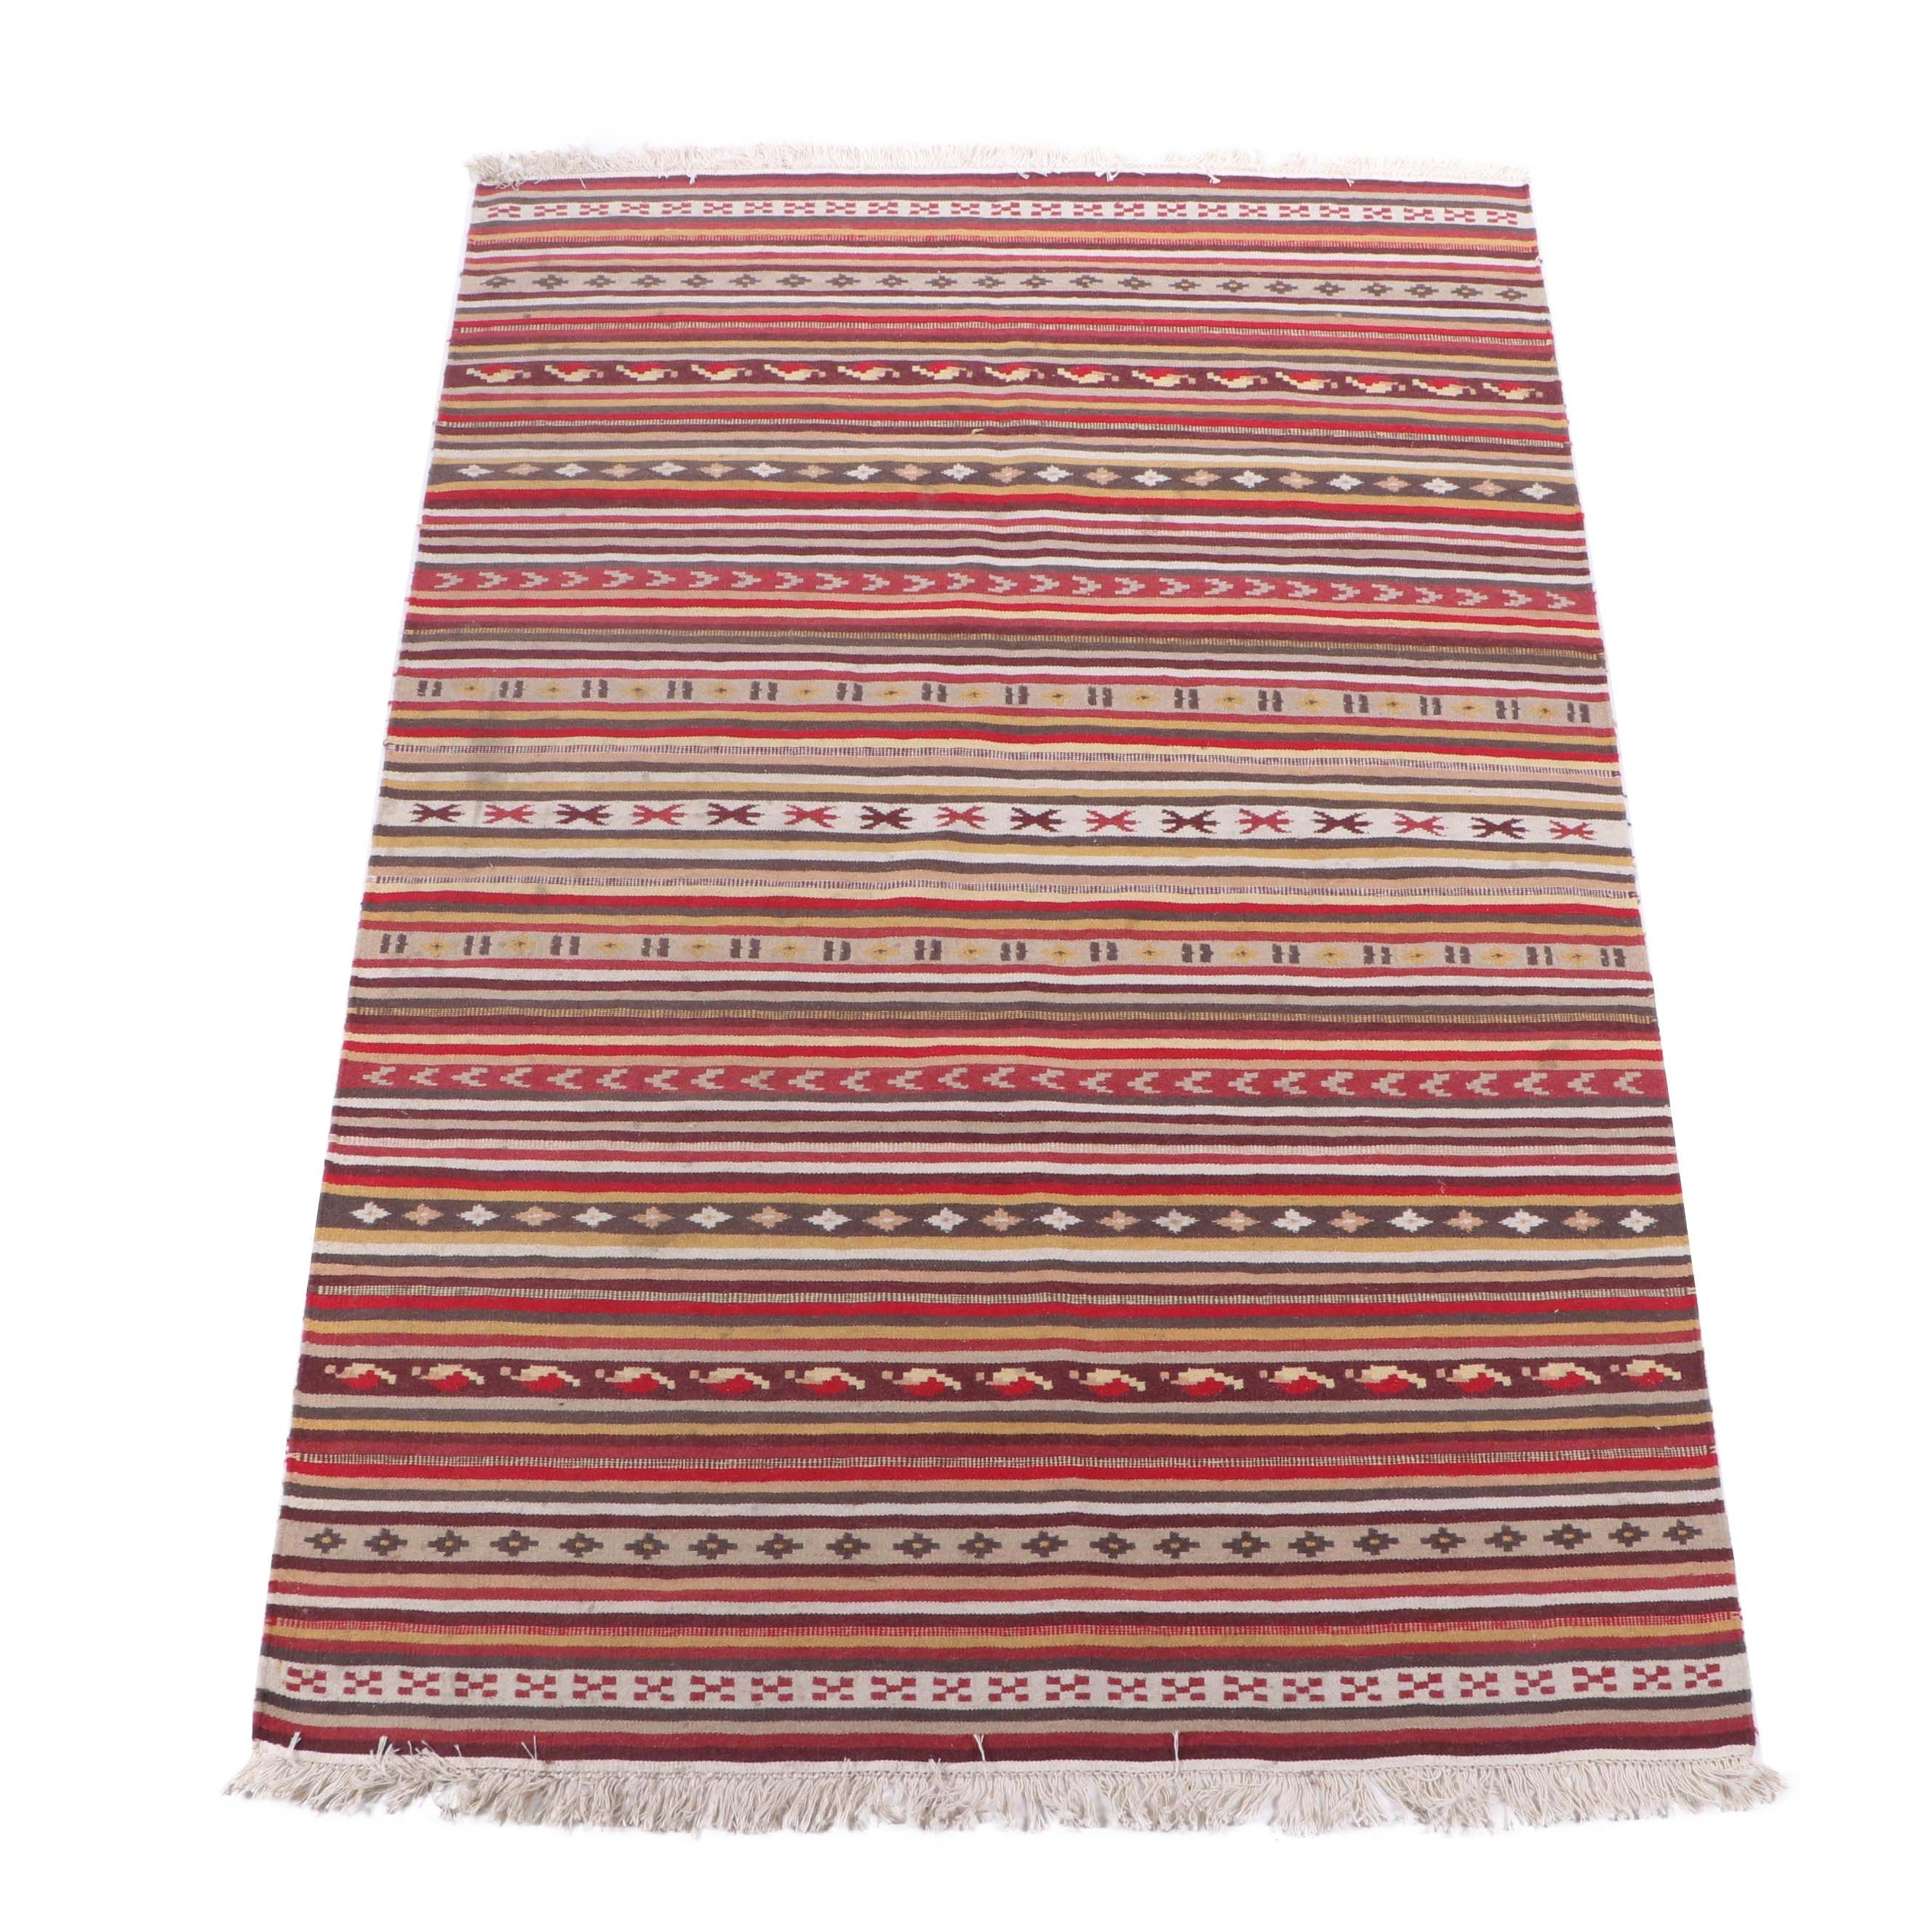 "Handwoven Ikea Indian ""Kattrup"" Wool Kilim"